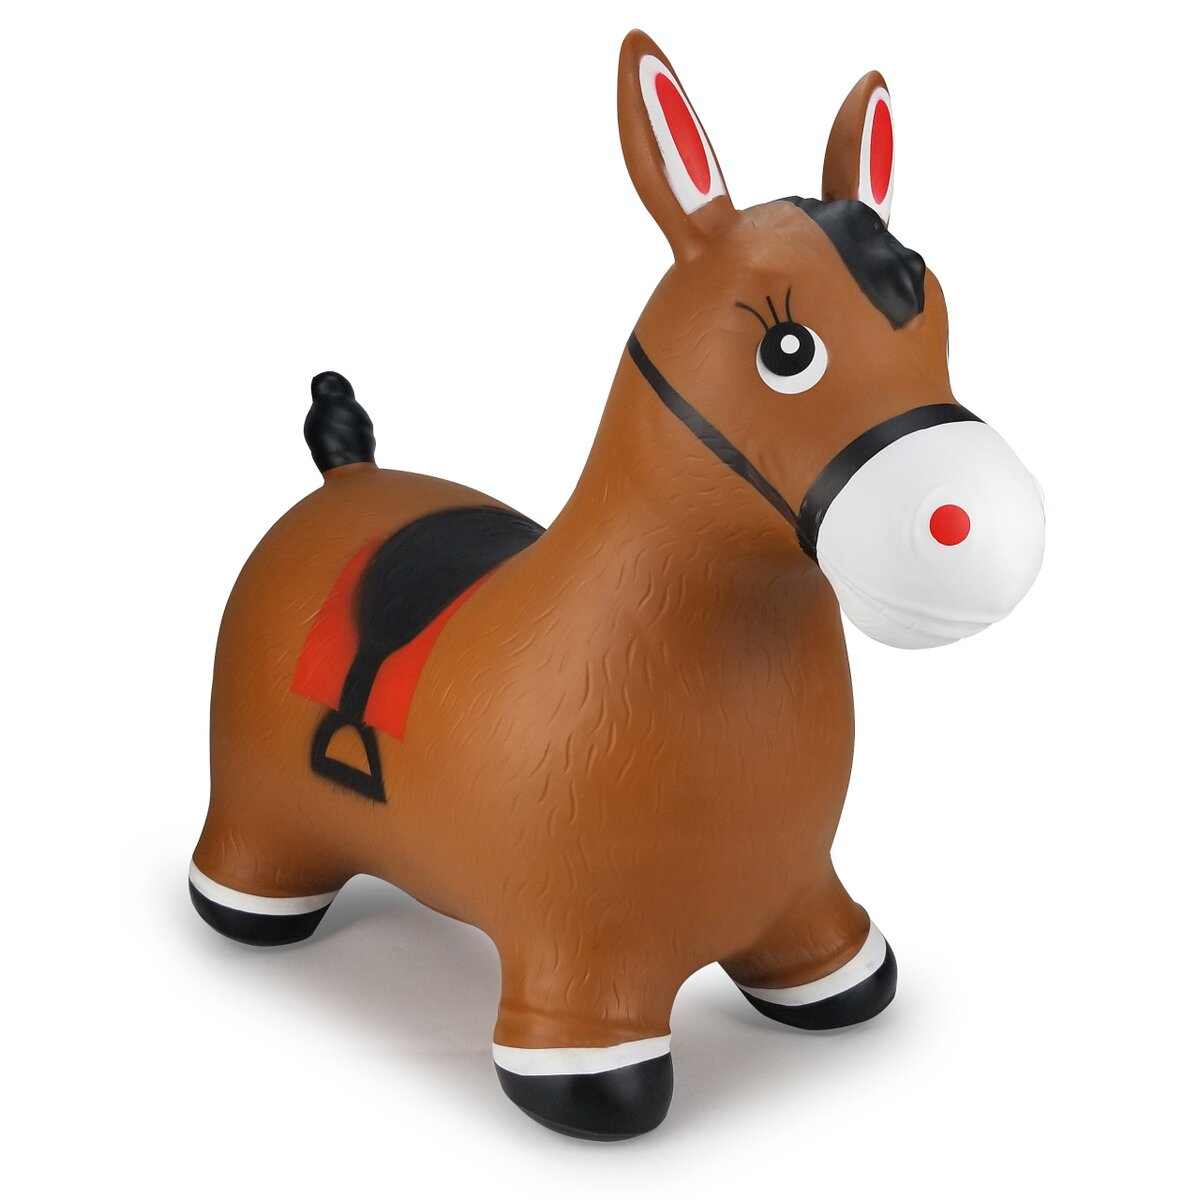 Robust and Durable Easy to Clean Jamara 460543 Lama Bouncy Toy Brown with Pump-up to 50 kg-Promotes Balance and Motor Skills